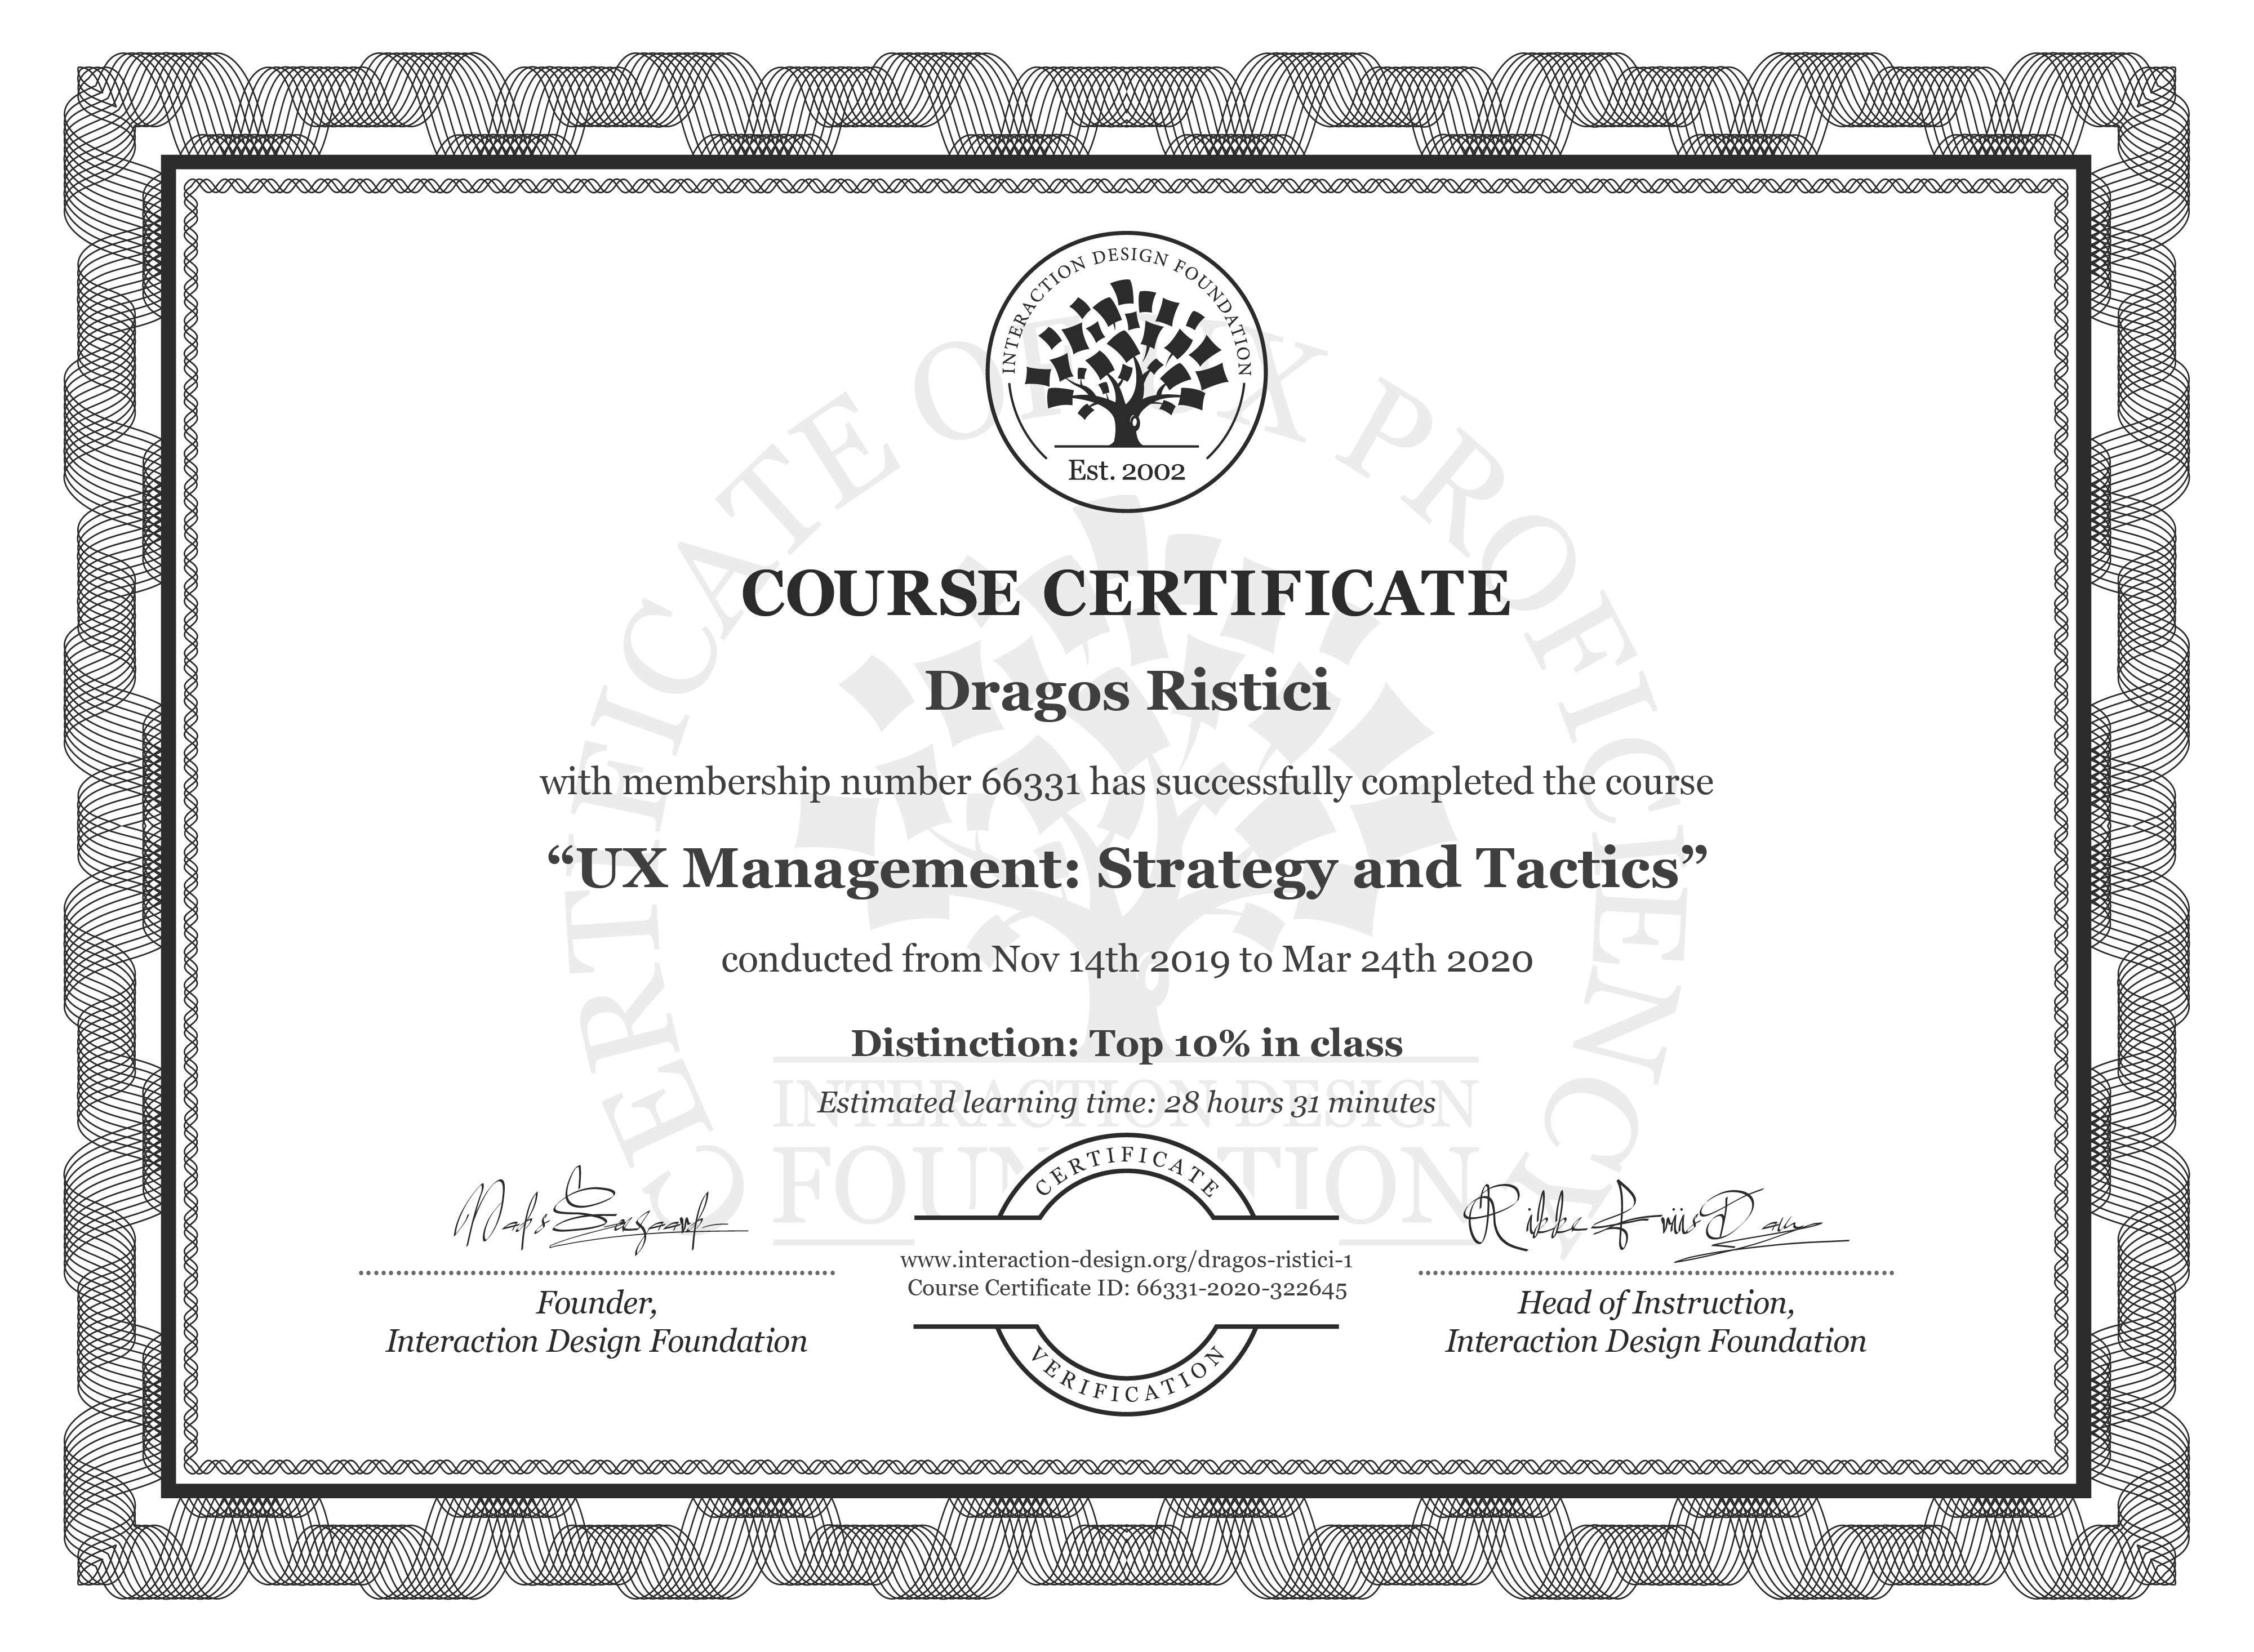 Dragos Ristici's Course Certificate: UX Management: Strategy and Tactics